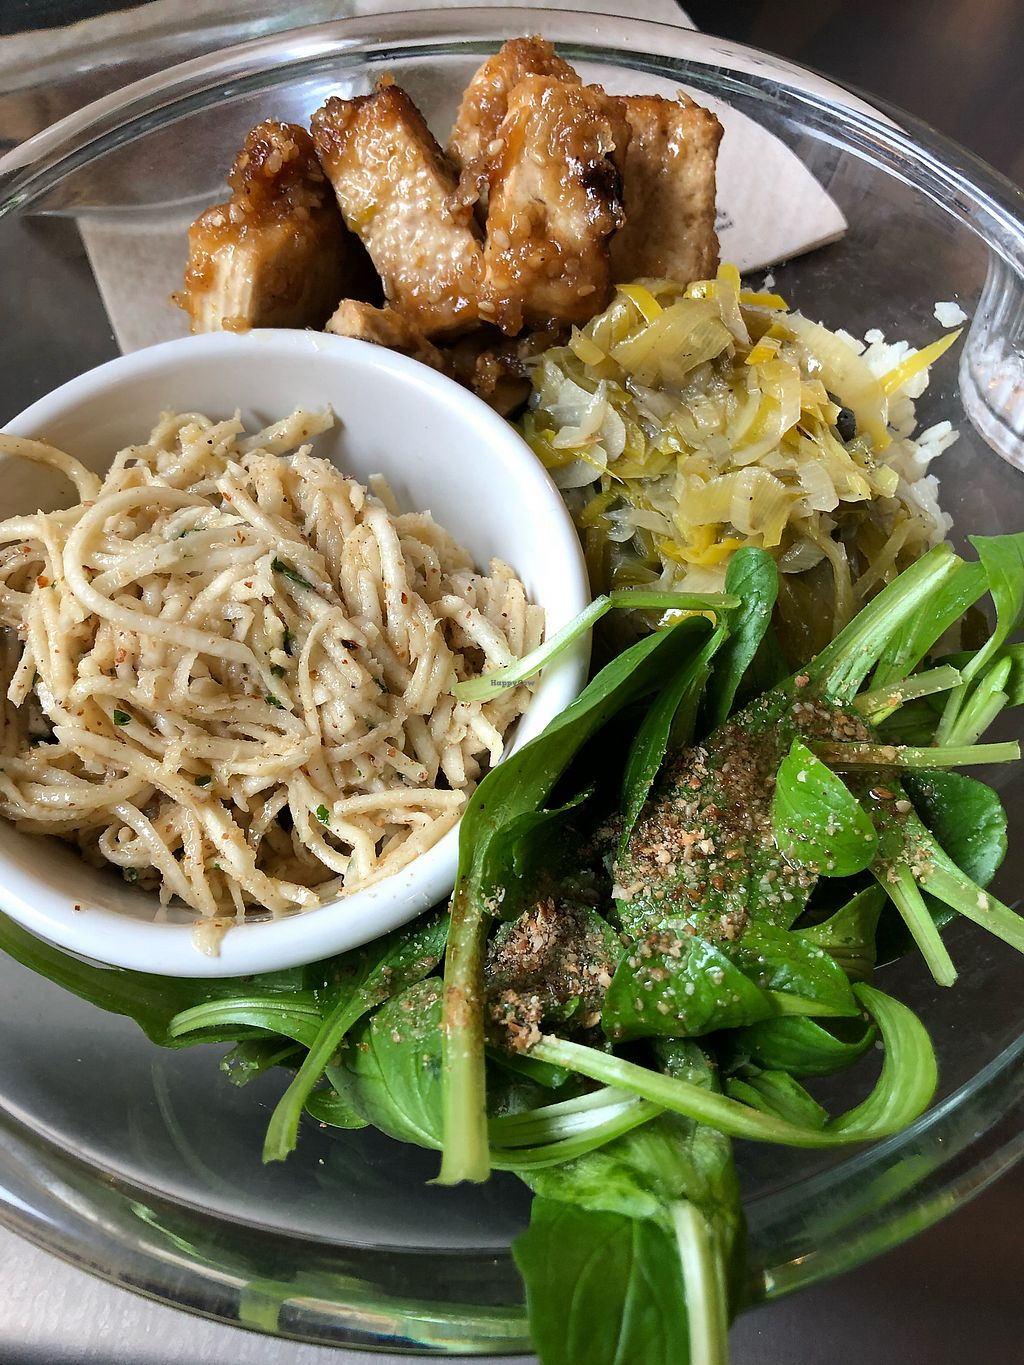 "Photo of Cafe Folk  by <a href=""/members/profile/zebsu"">zebsu</a> <br/>Yesterday's lunch menu!!! Absolutely delicious  <br/> February 1, 2018  - <a href='/contact/abuse/image/109931/353673'>Report</a>"